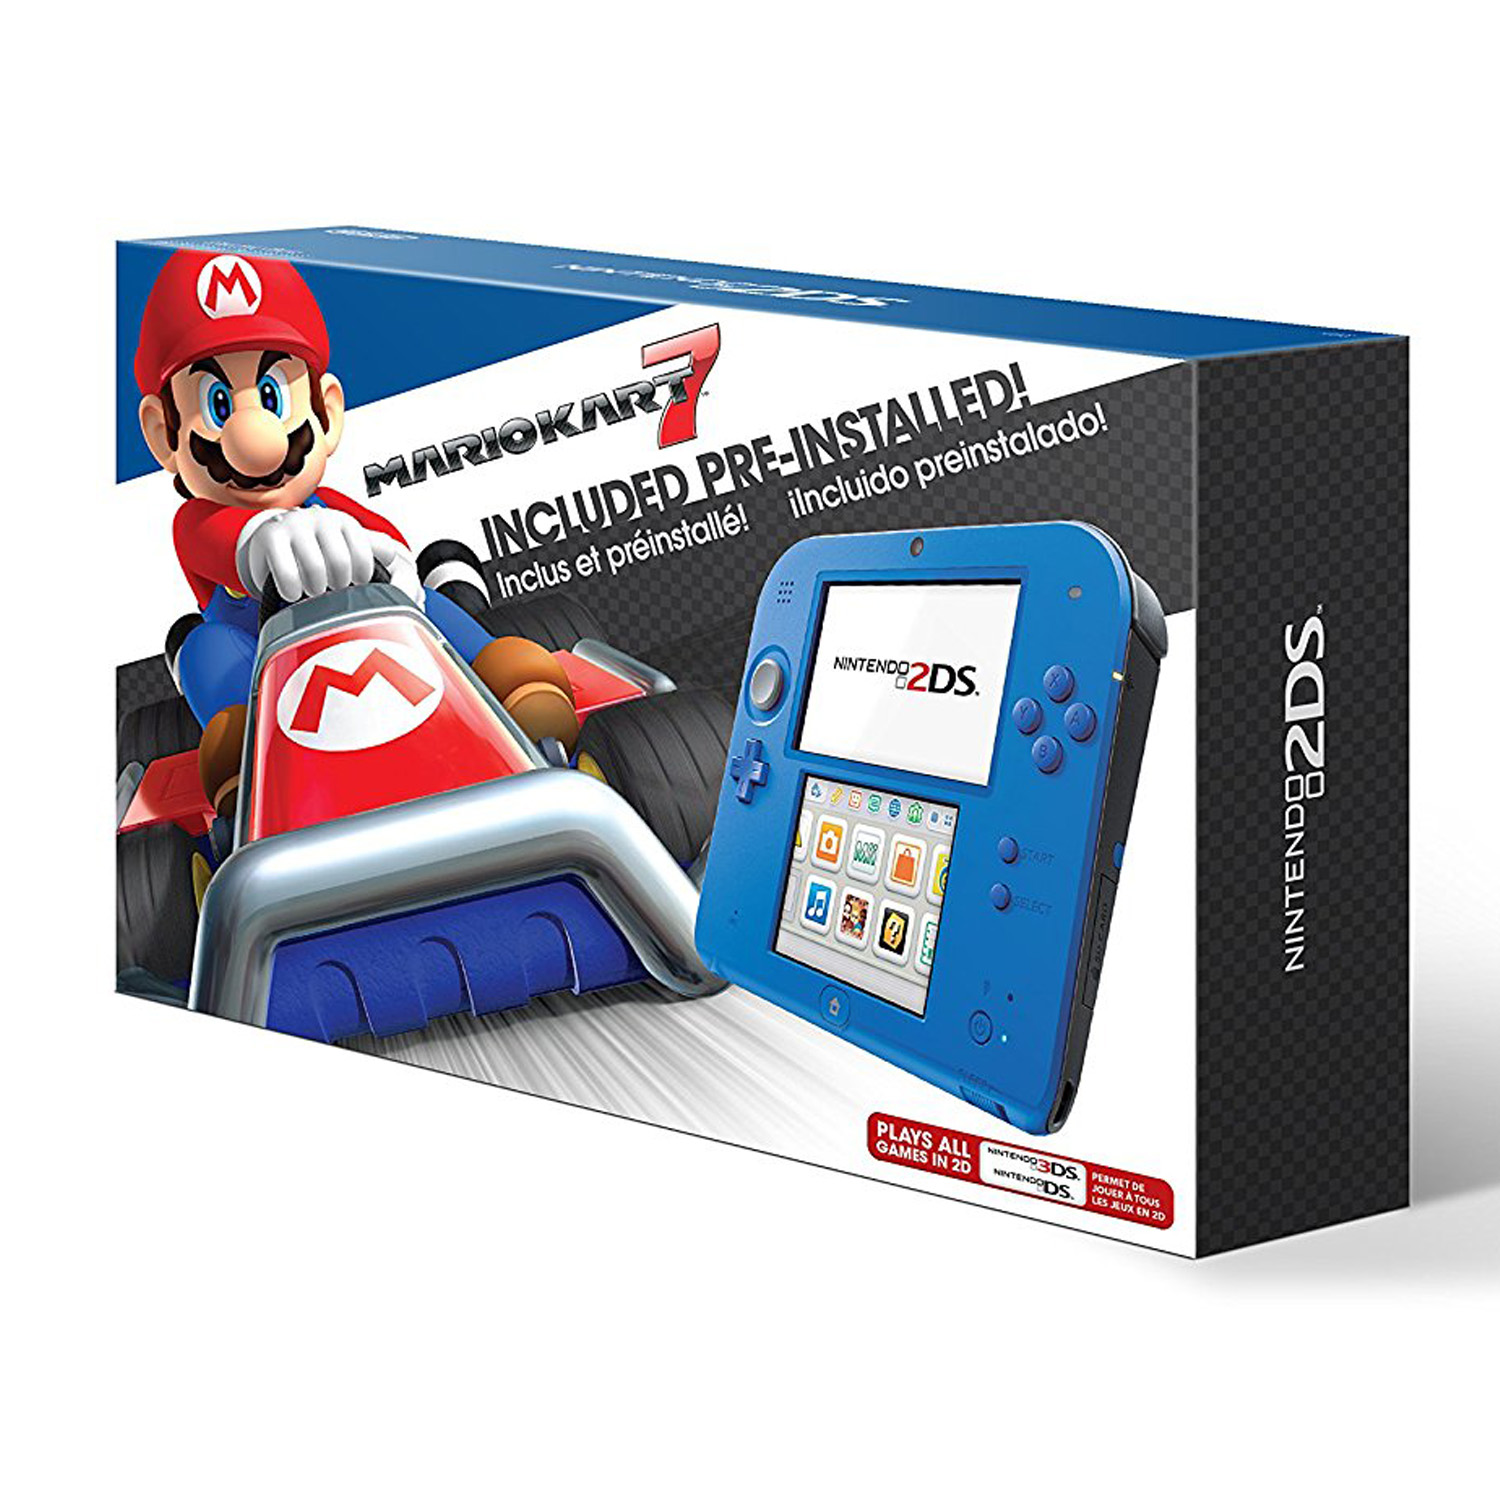 Nintendo 2DS Electric Blue 2 System with Mario Kart 7 (Nintendo 2DS)